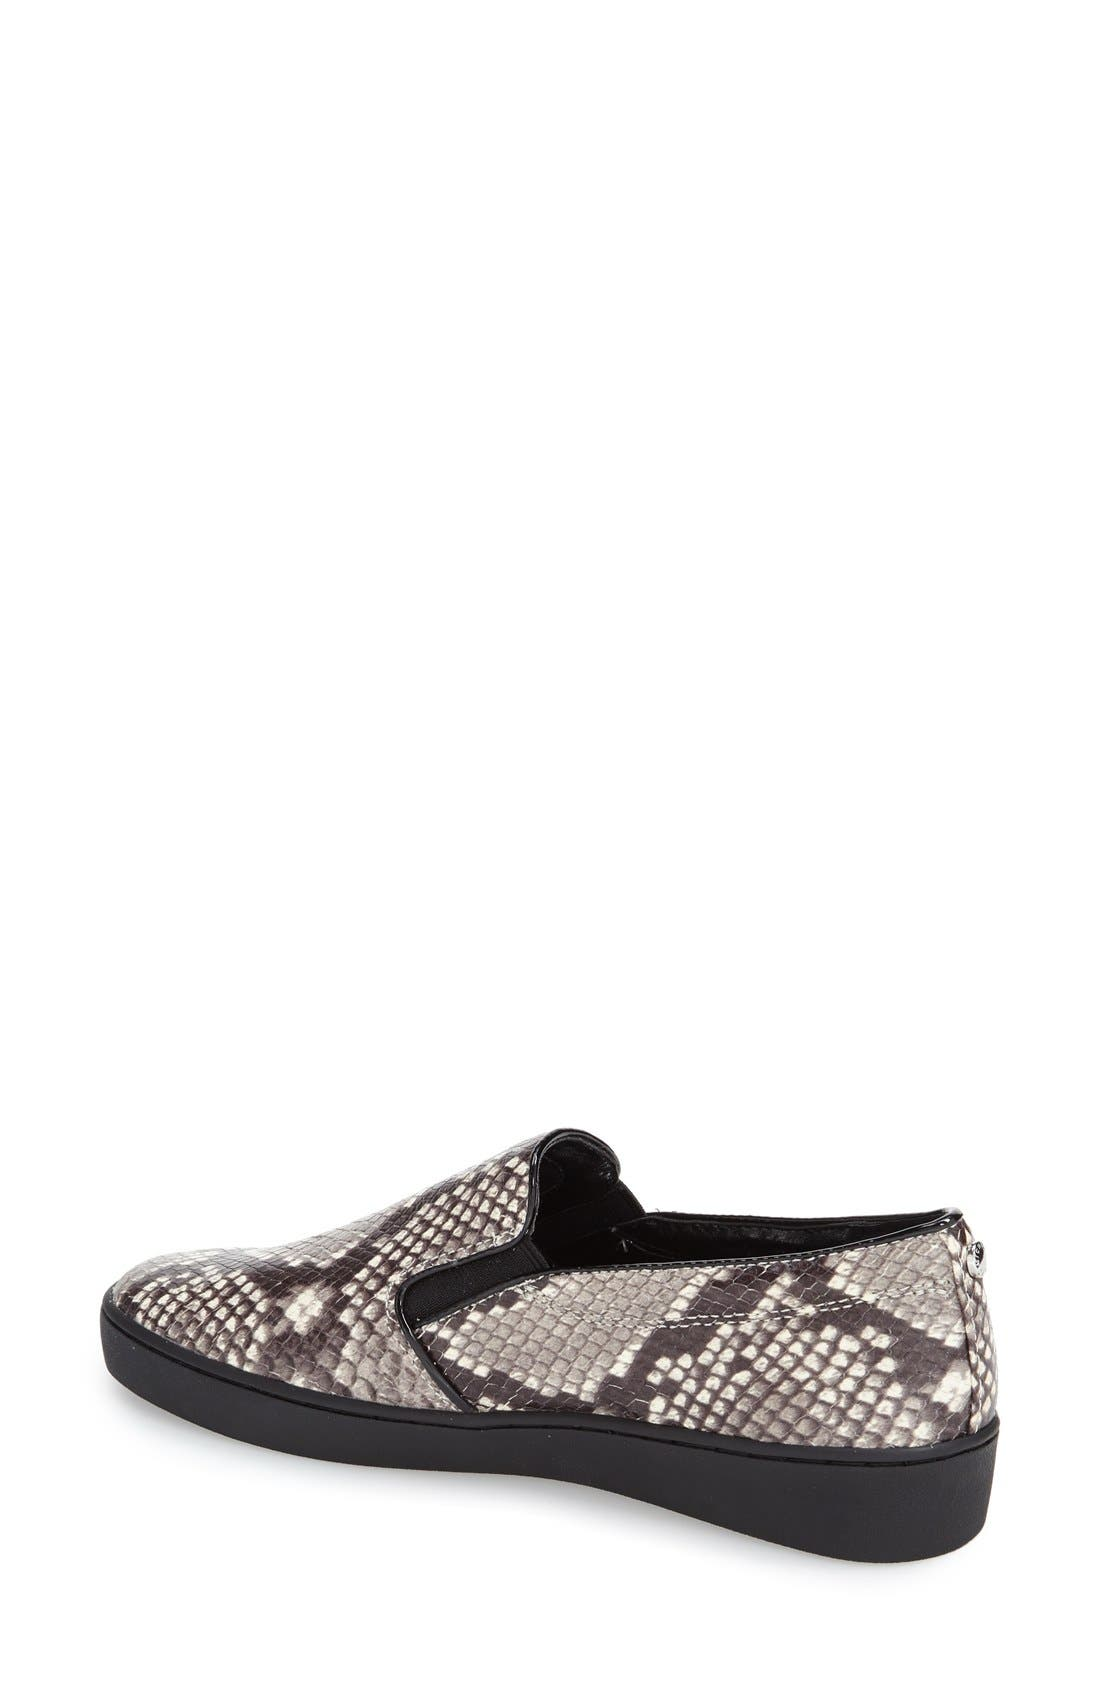 Keaton Slip-On Sneaker,                             Alternate thumbnail 81, color,